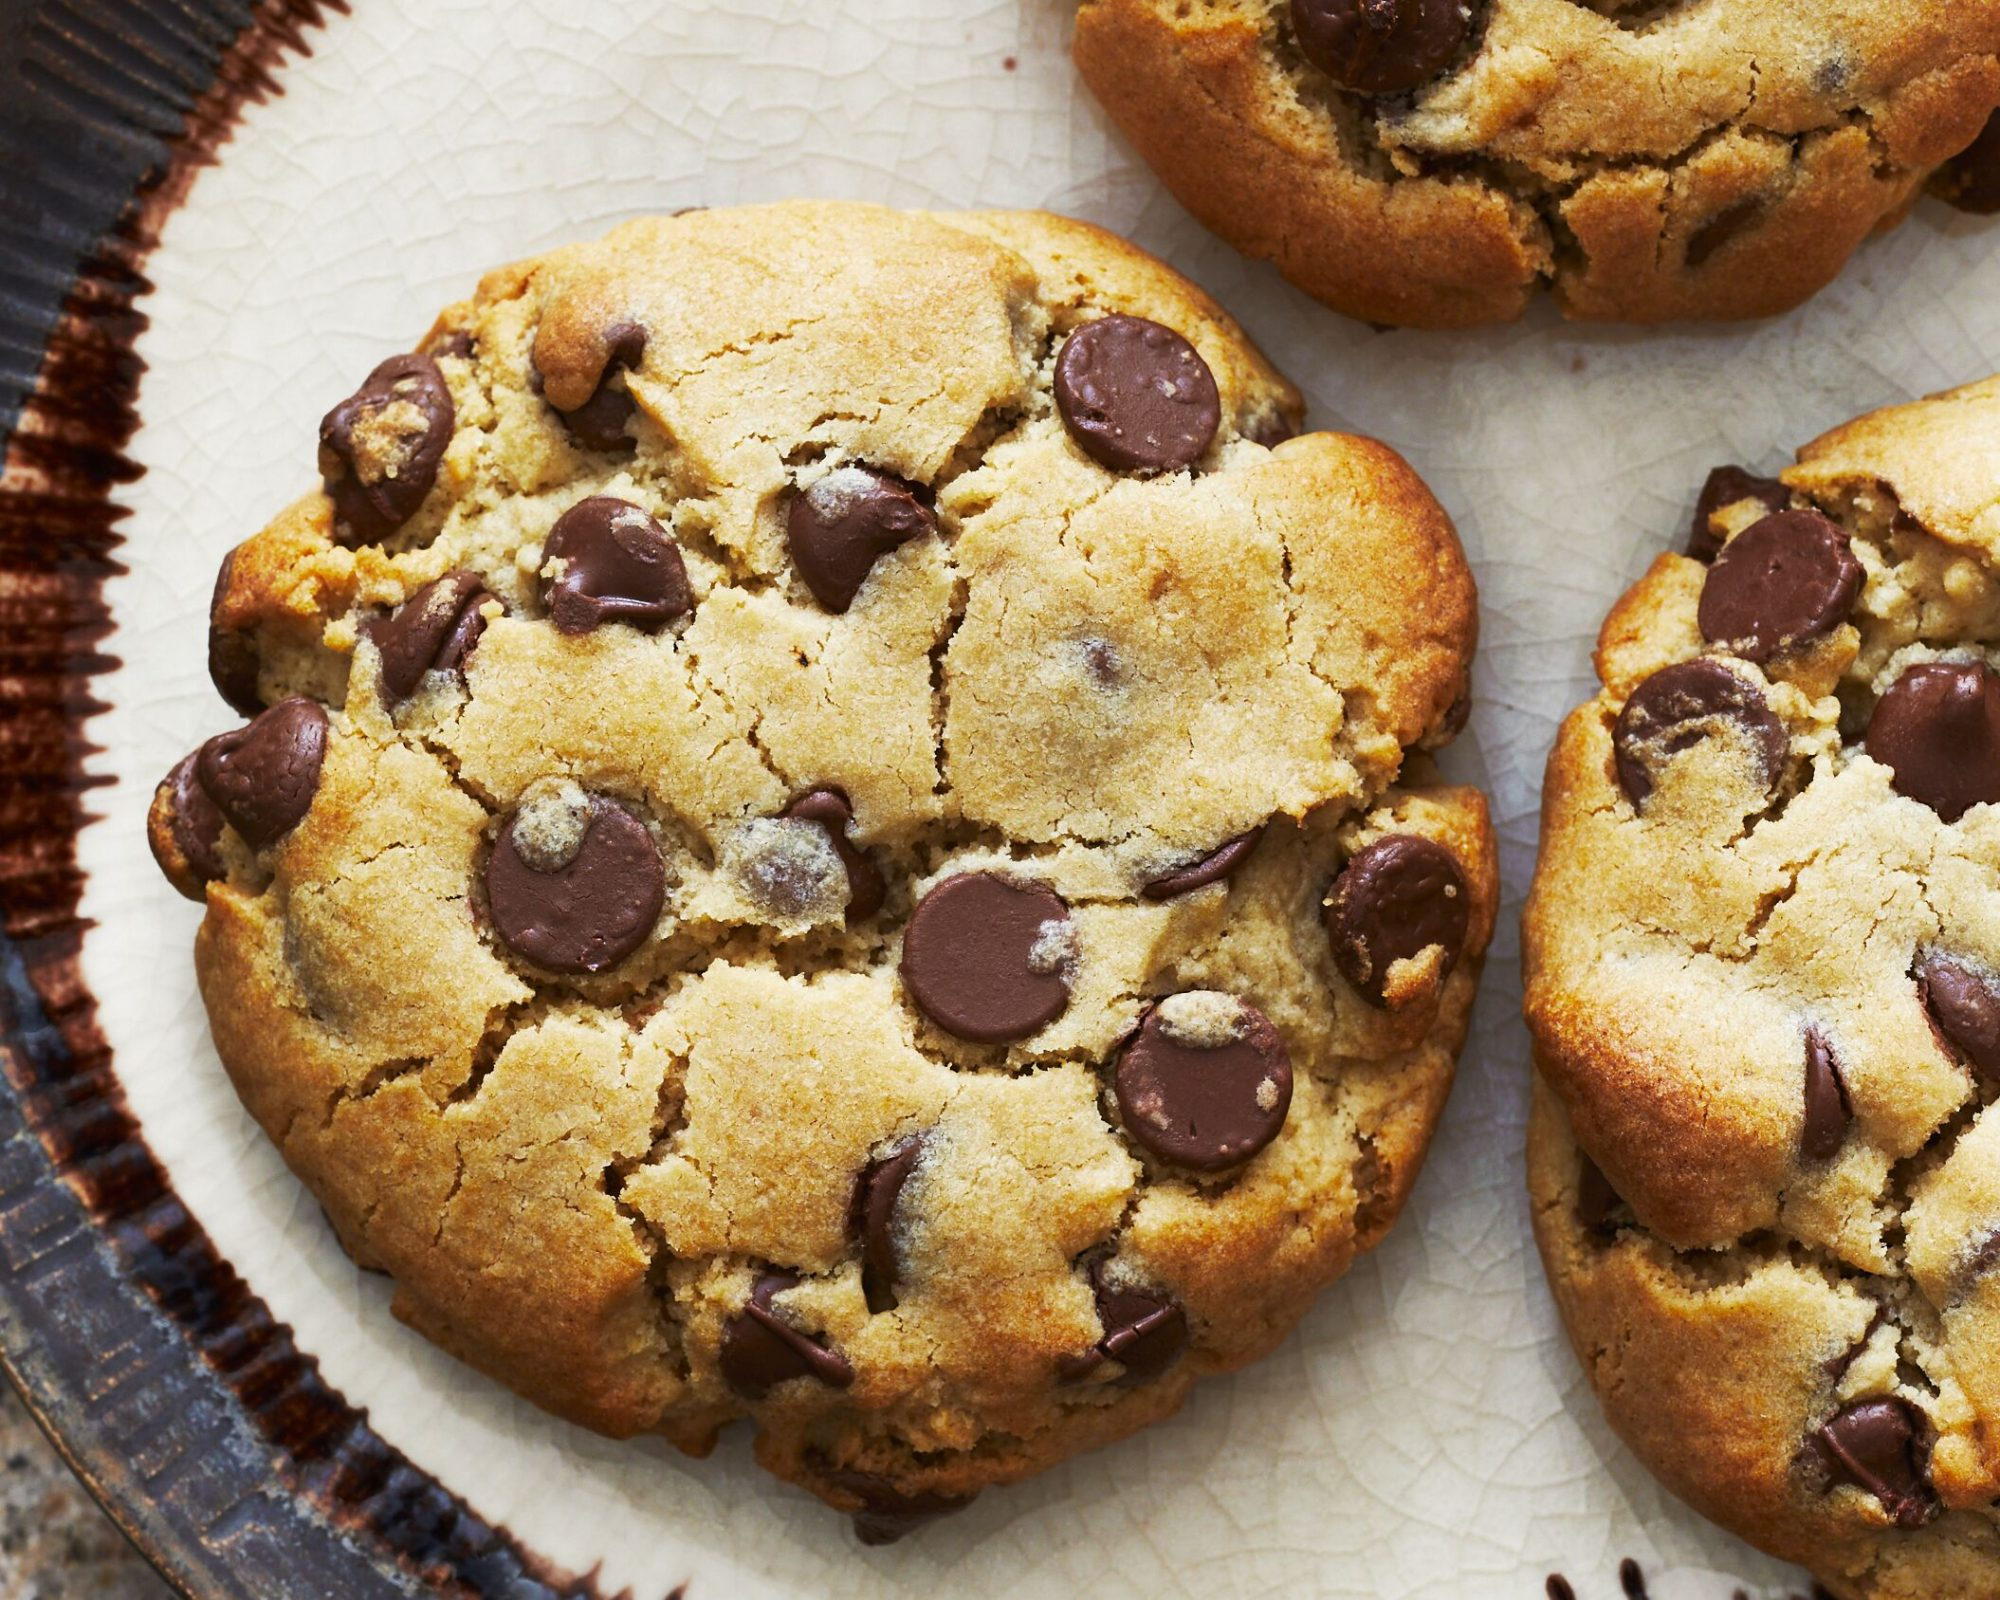 Thick Chocolate Chip Cookies Plated